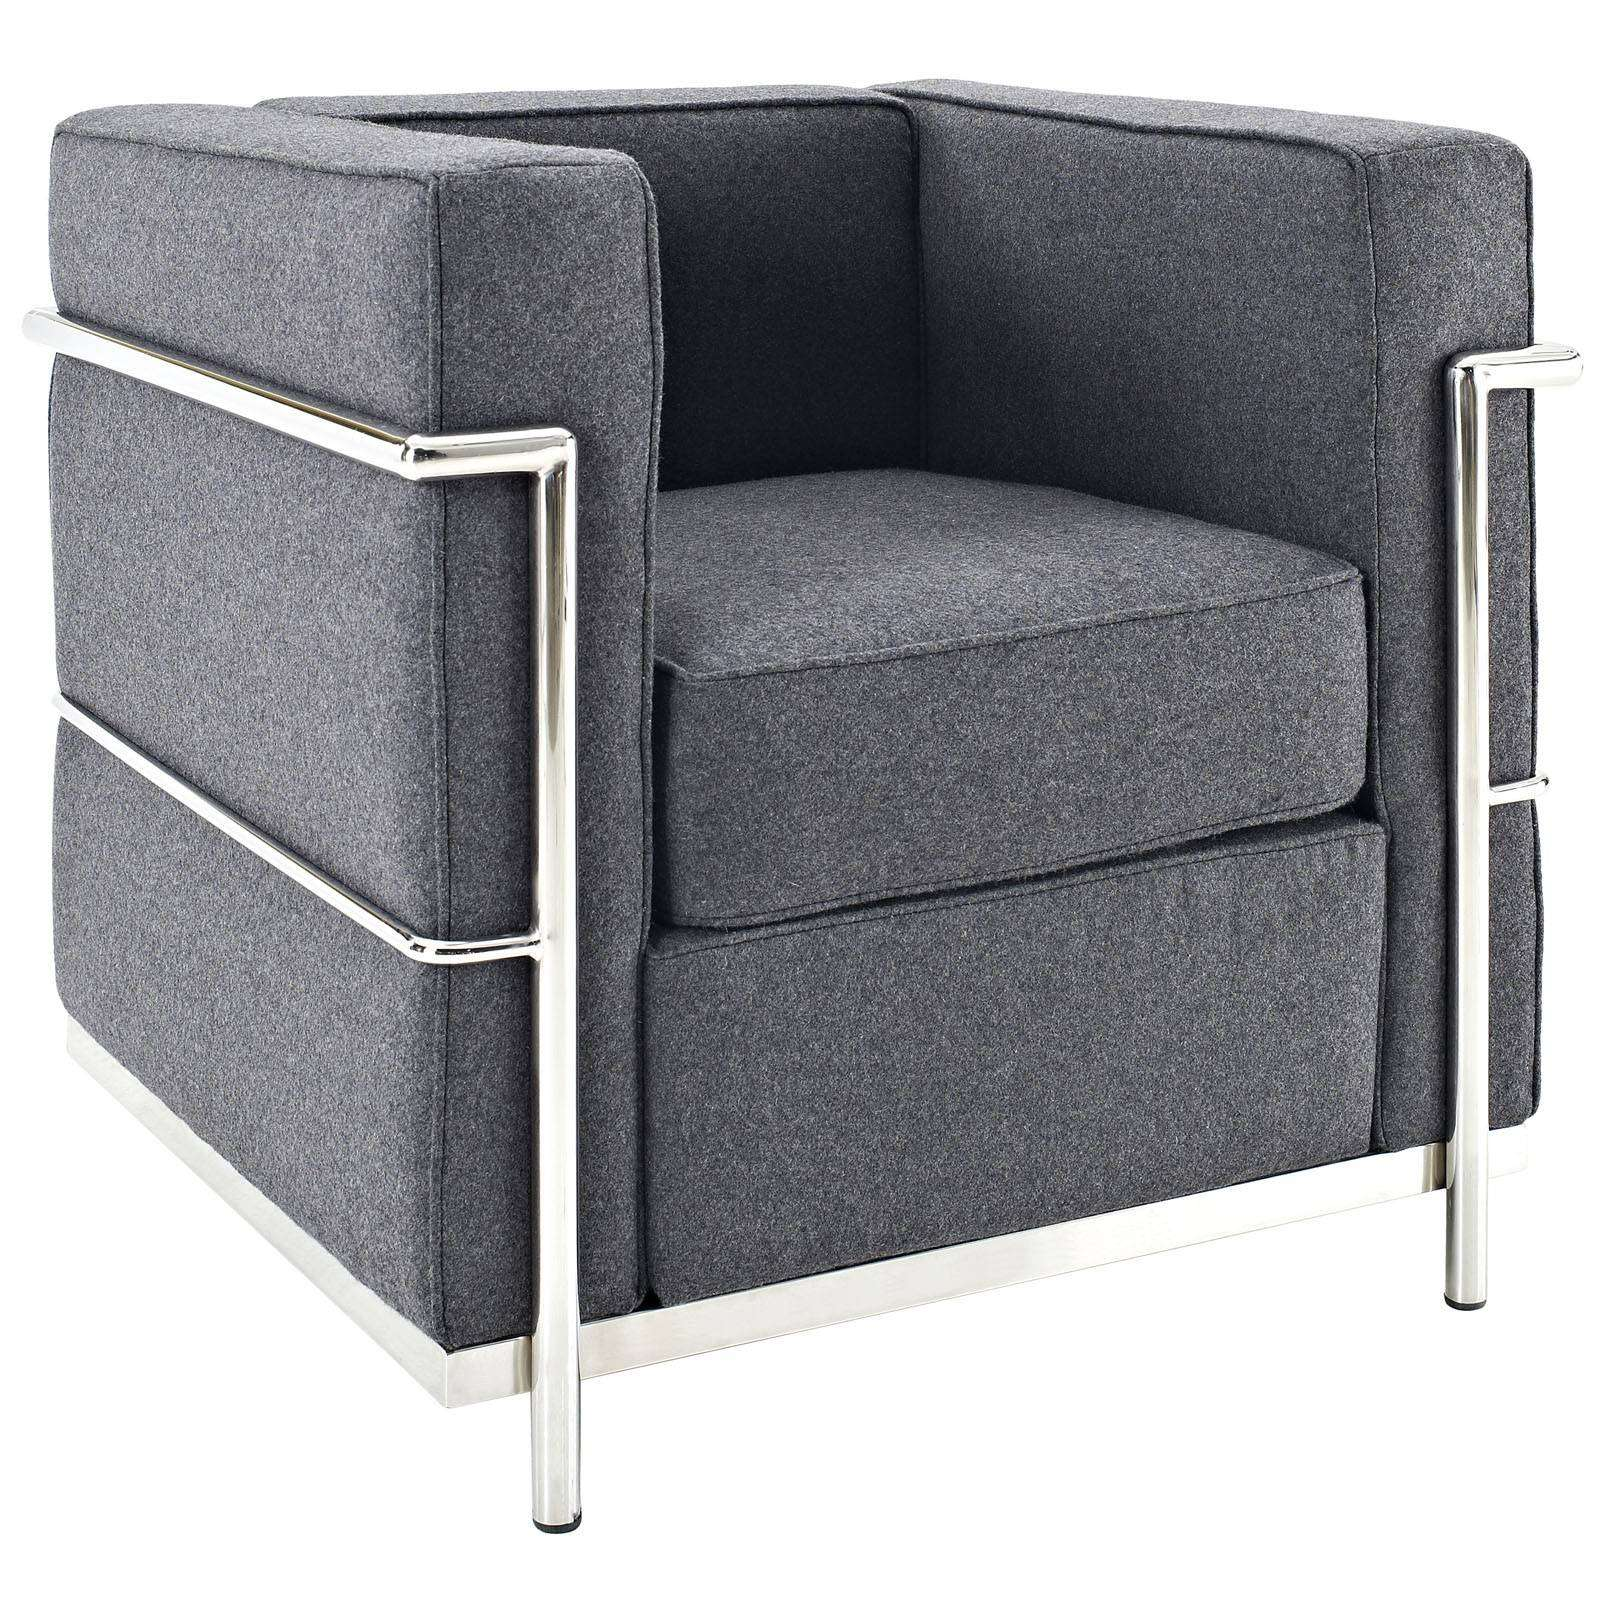 Le corbusier style lc2 arm chair wool for Le corbusier lc2 nachbau